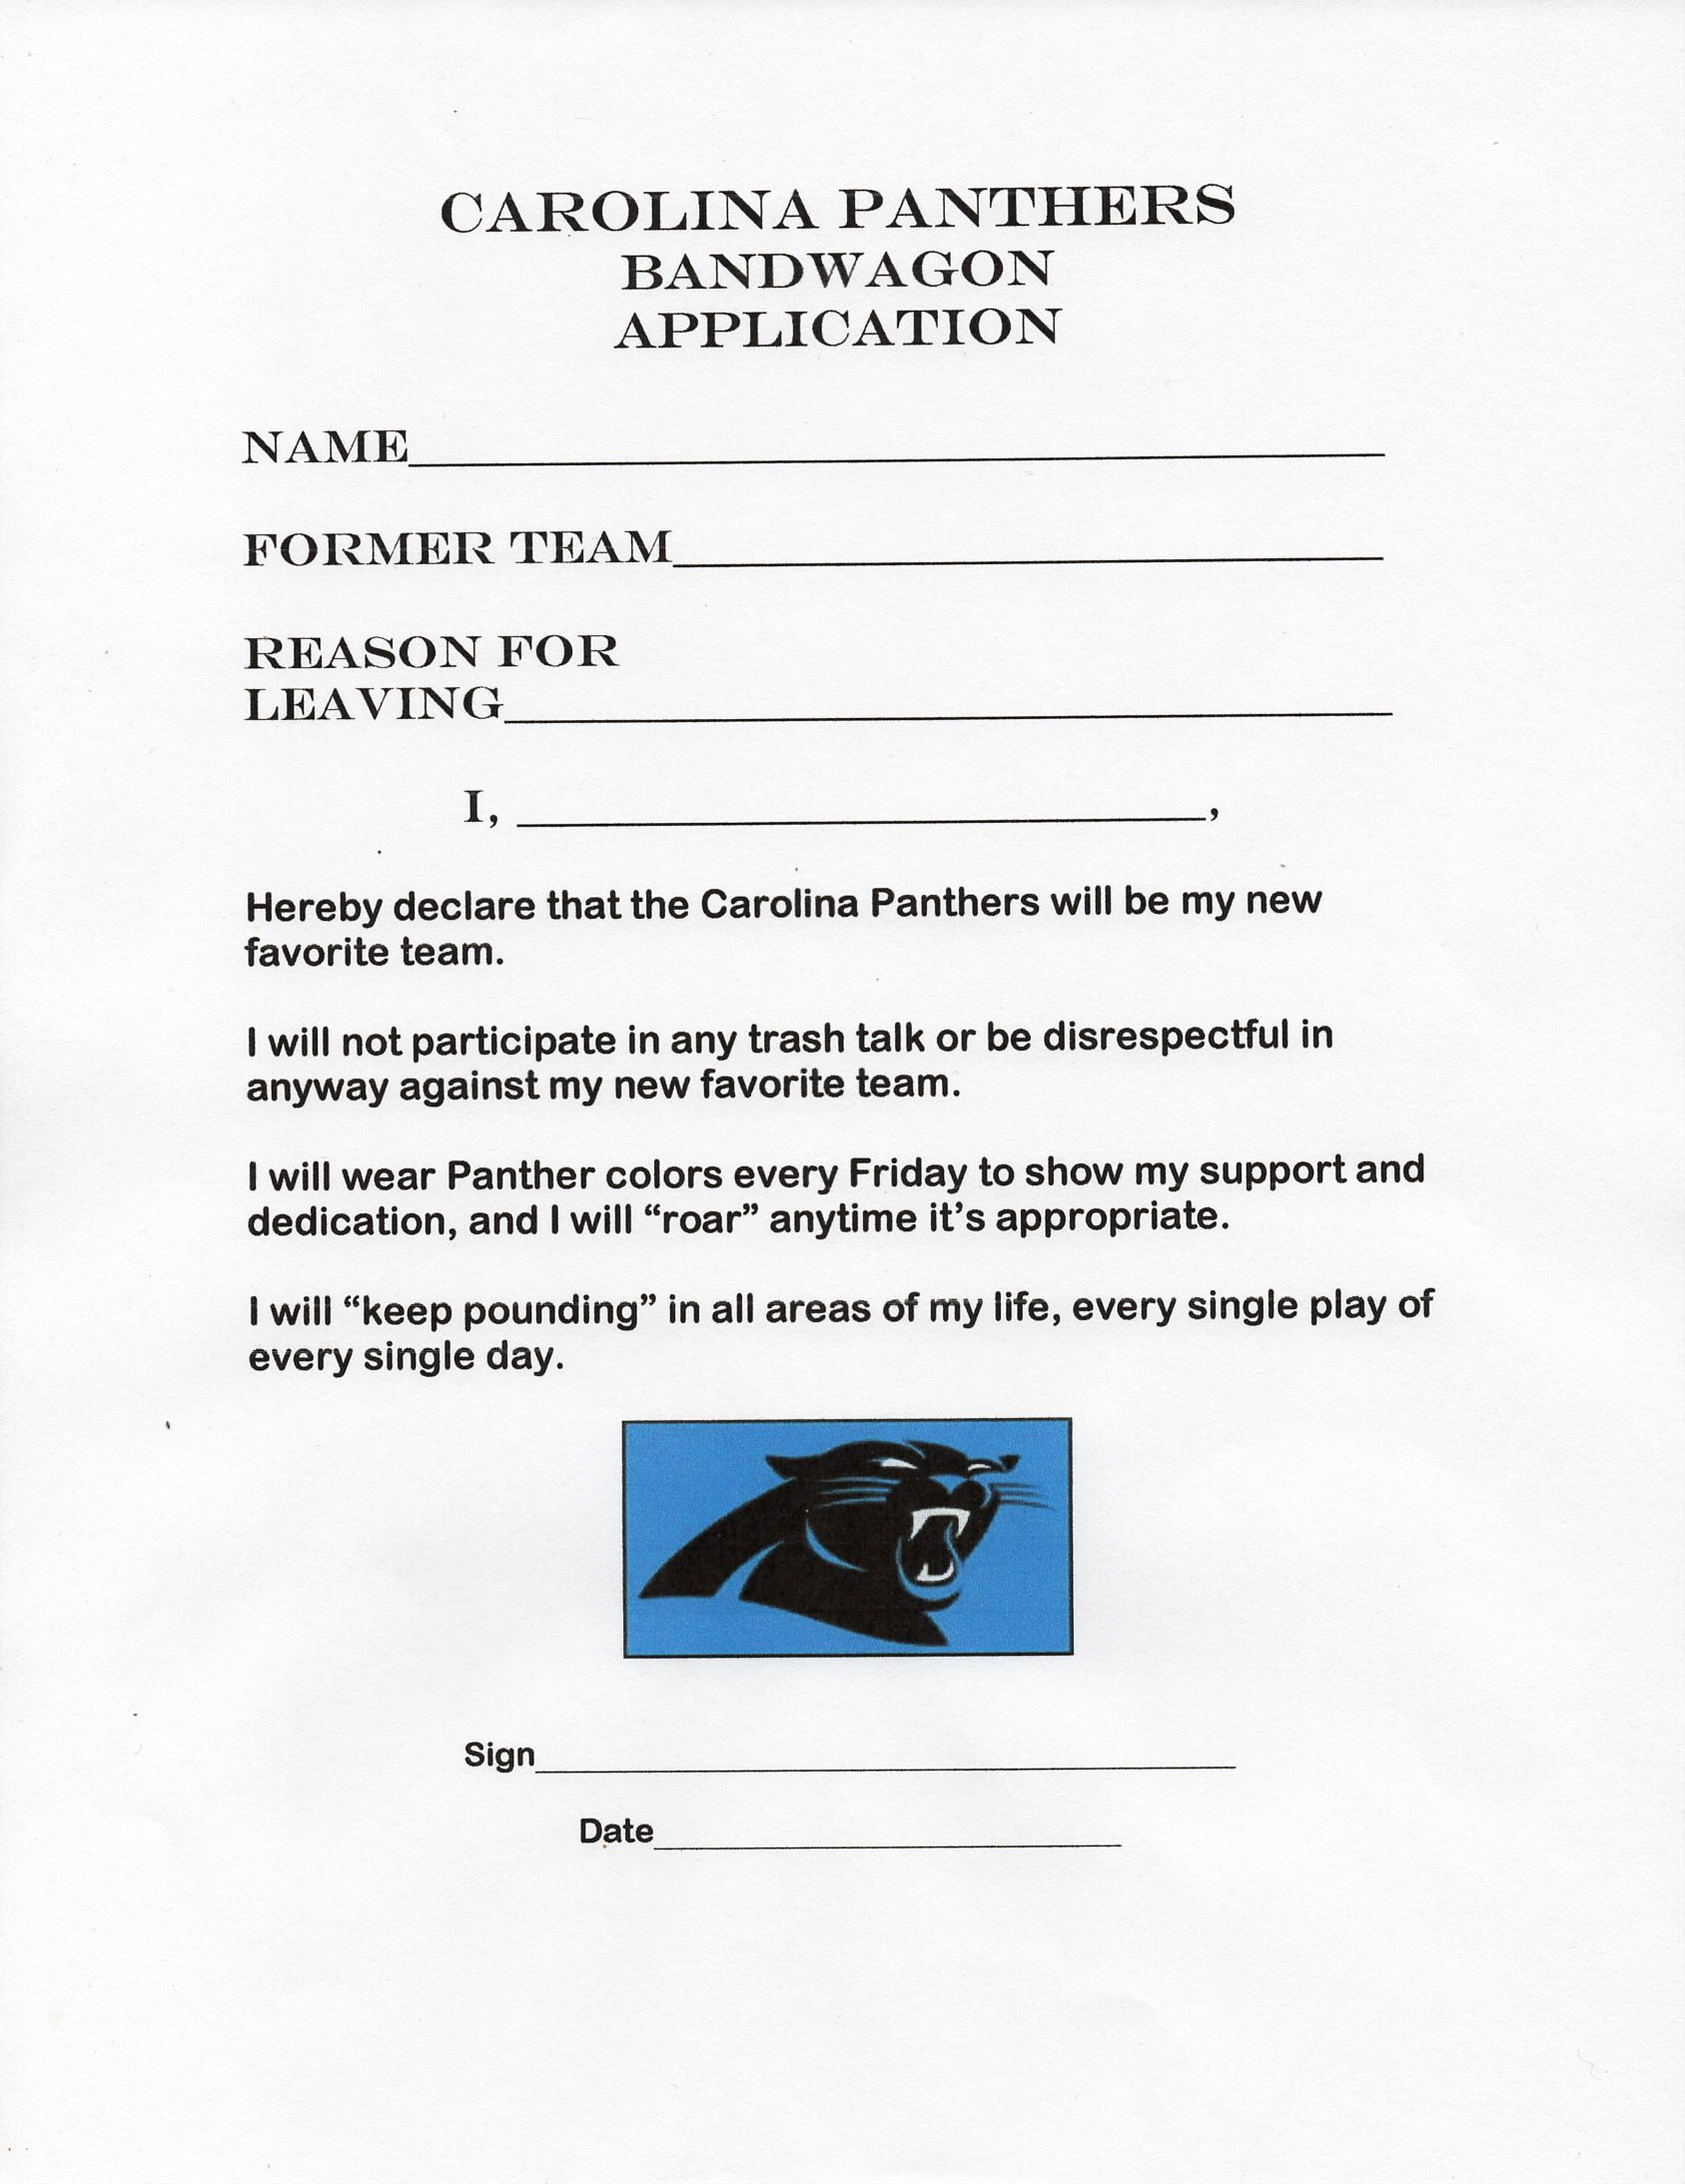 found today carolina panthers bandwagon application 1 28 2016 carolina panthers bandwagon application 1 28 2016 too cute